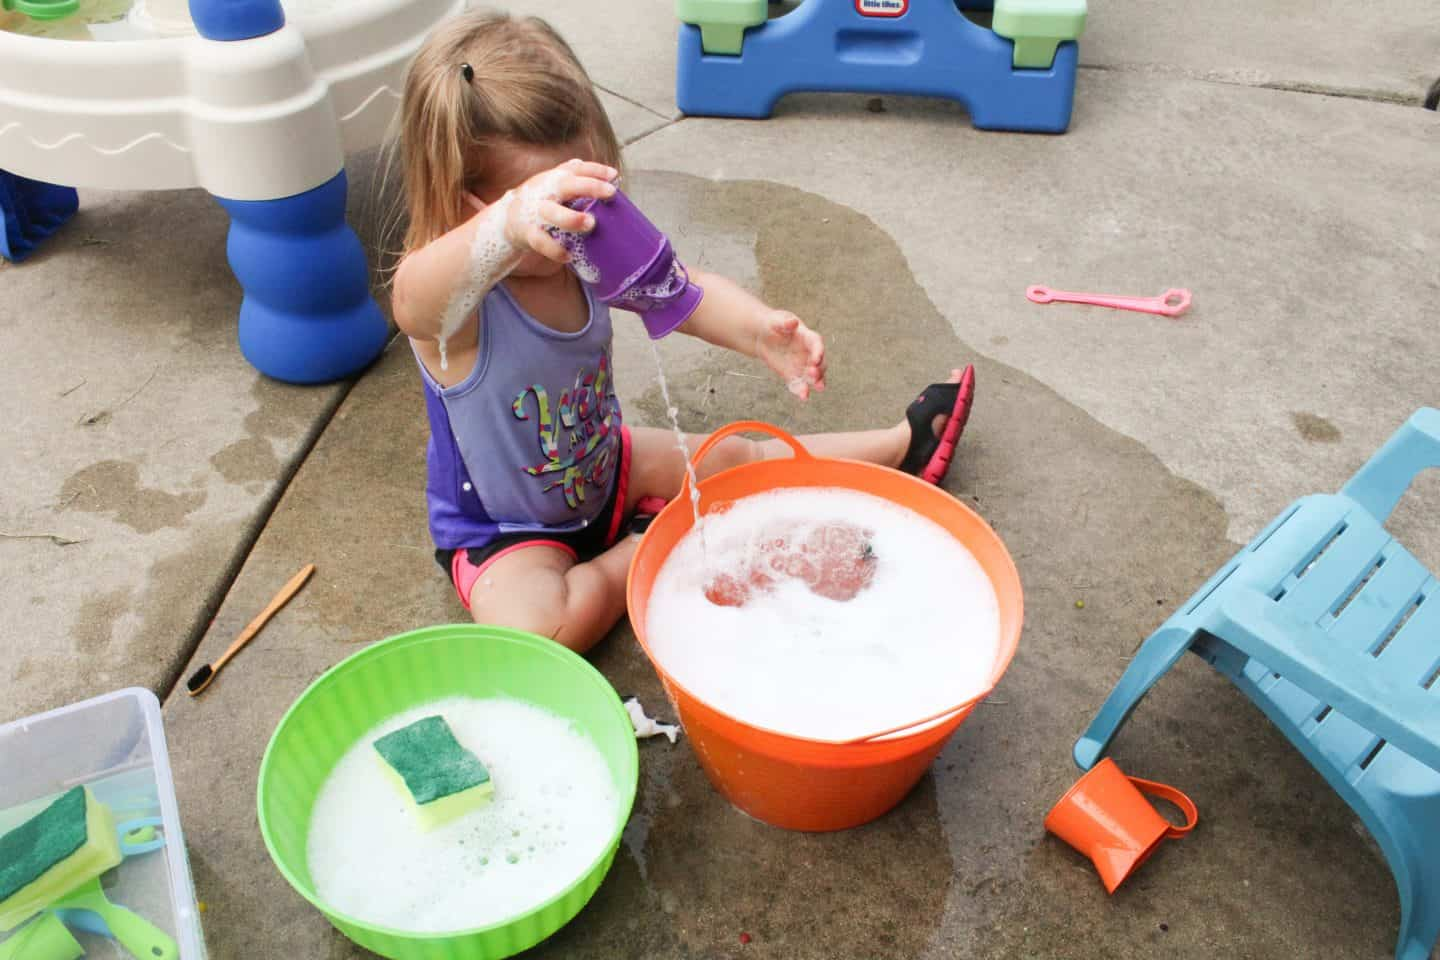 Use large buckets of water for tons of toddler water play. Add bubbles and allow your toddler to play in the water #waterplay #toddleractivities #preschooler #sensoryplay #sensoryboxes